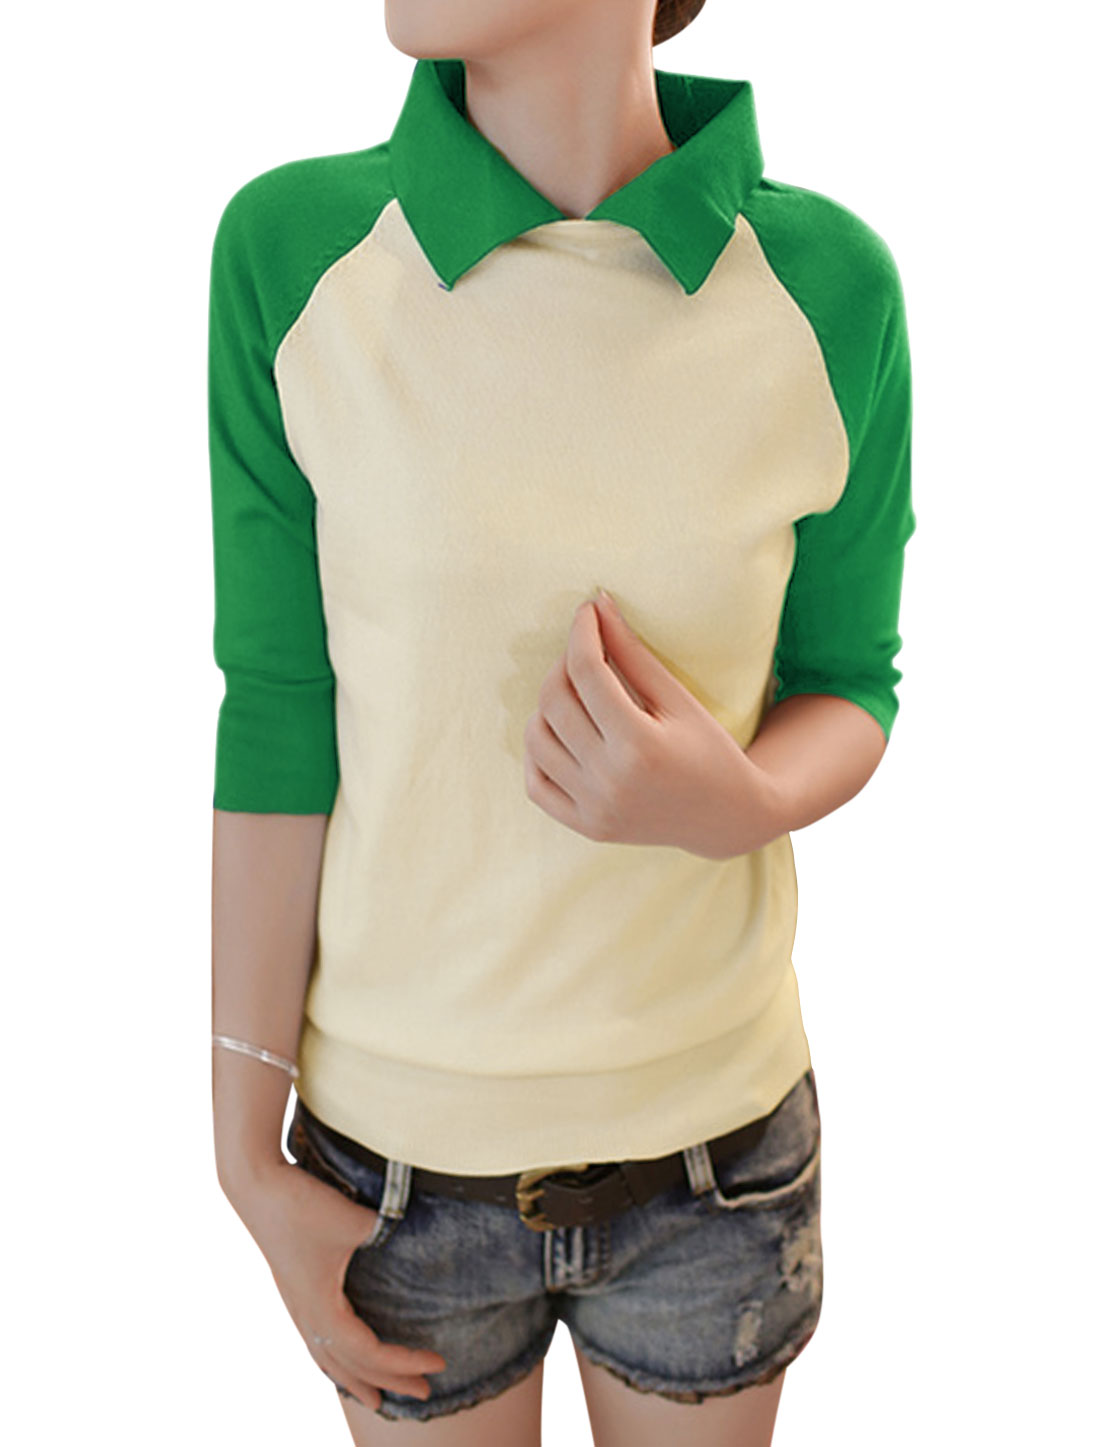 Lady Pullover Raglan Sleeve Color Block Knit Shirt Green Beige XS